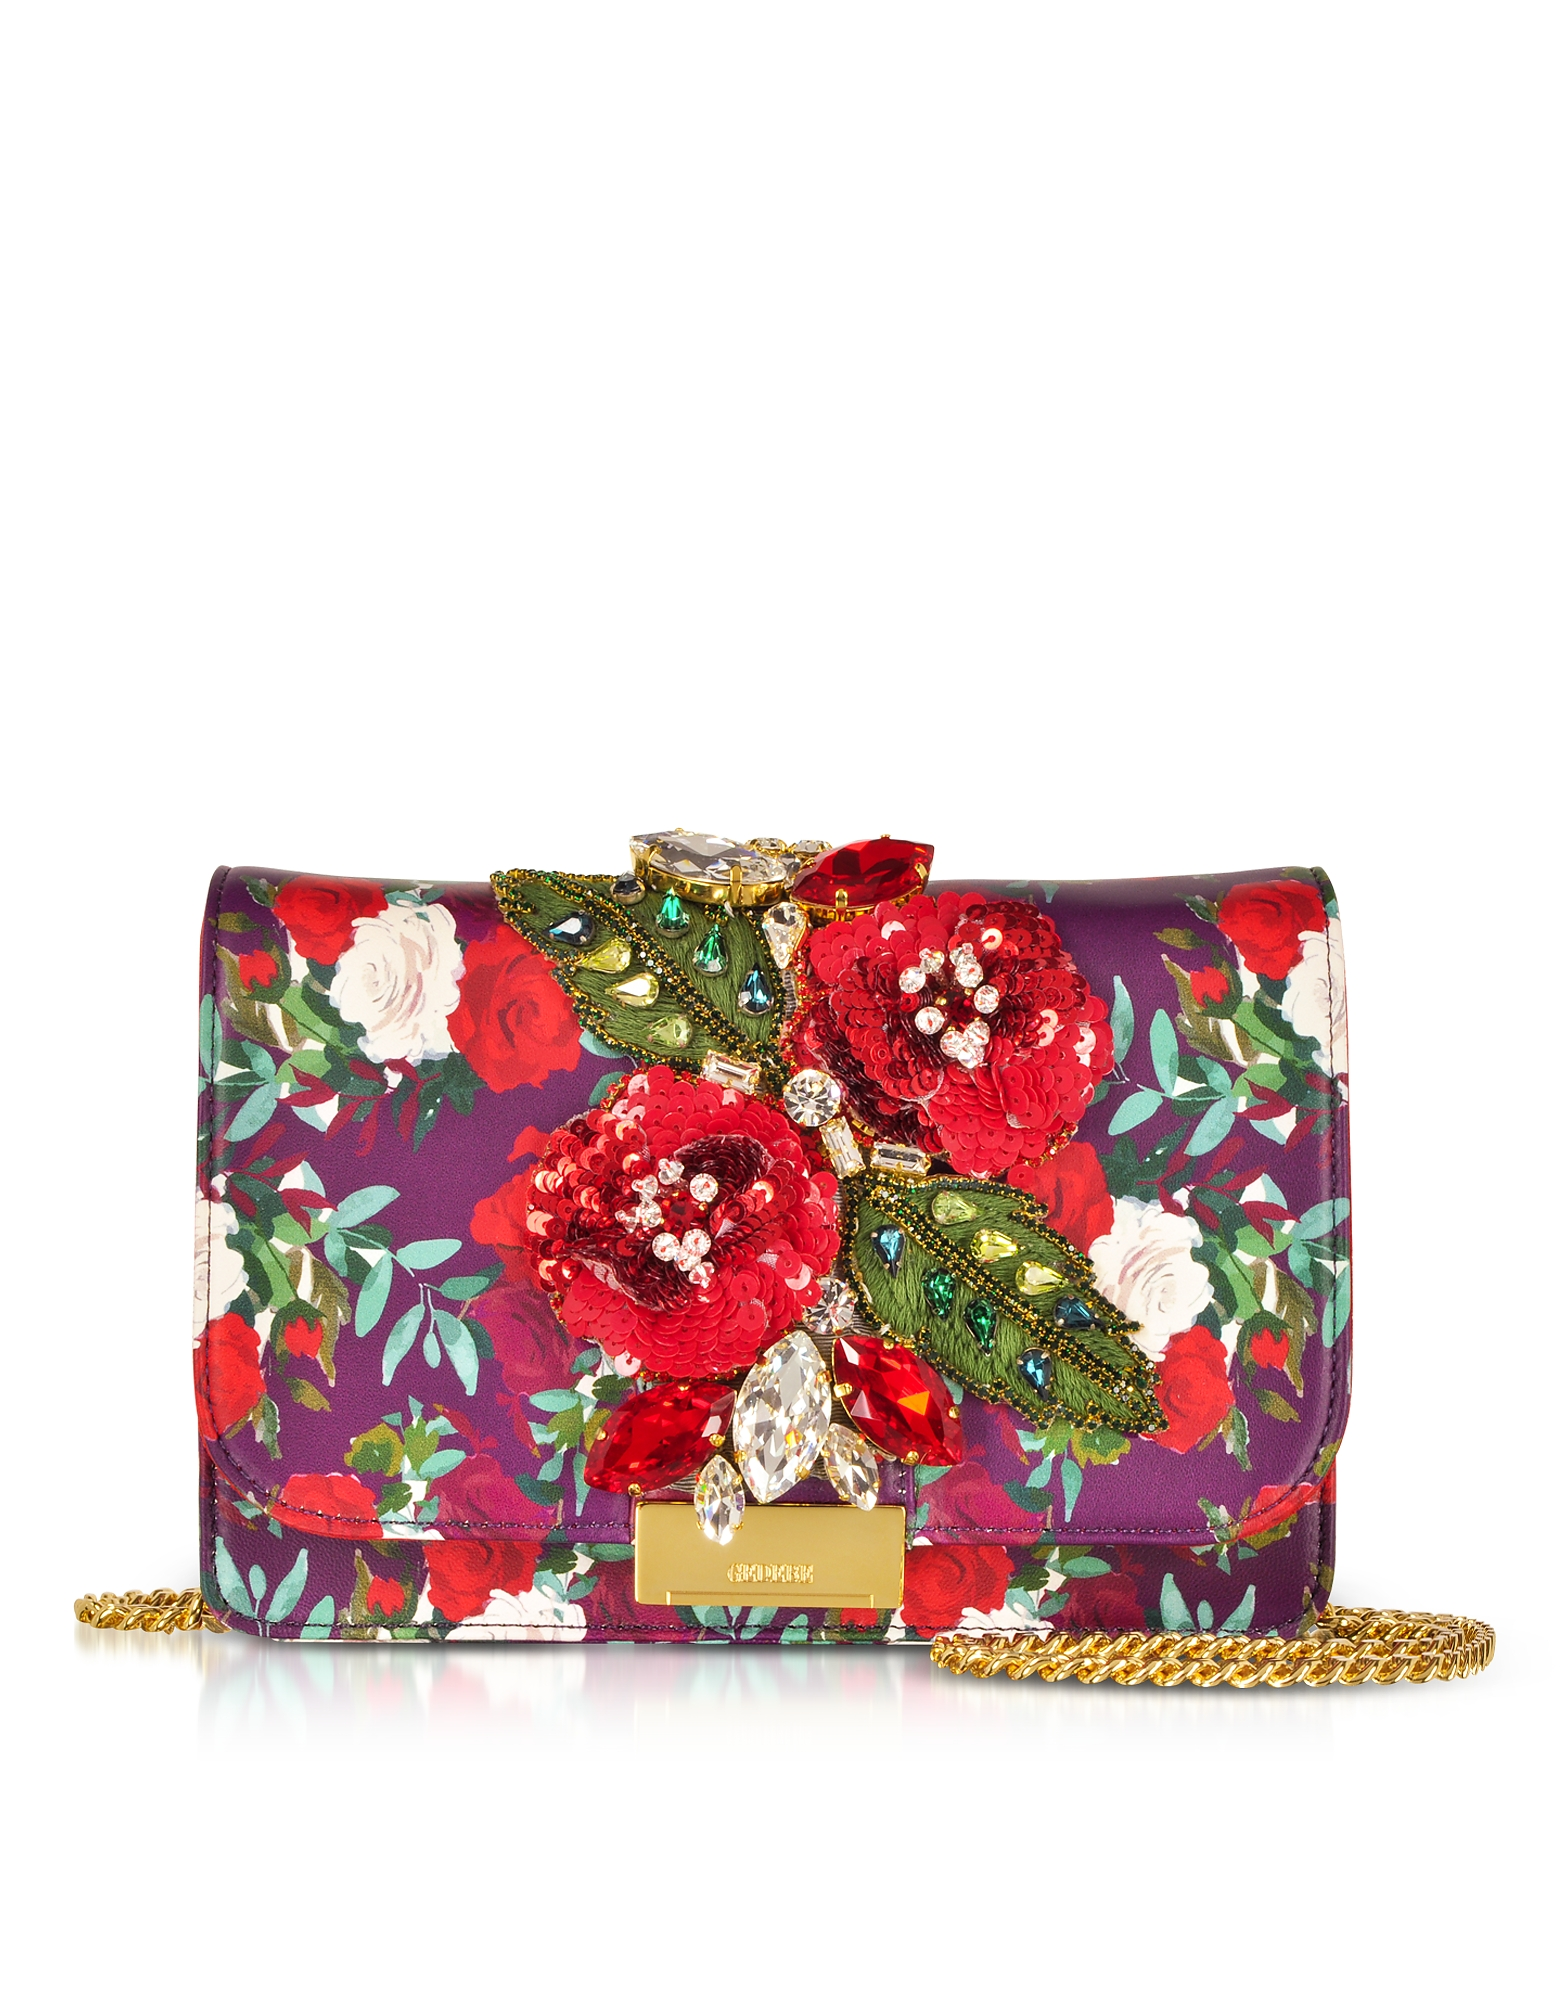 Image of Gedebe Designer Handbags, Cliky Red Burgundy Nappa Printed Roses Clutch w/Crystals and Chain Strap